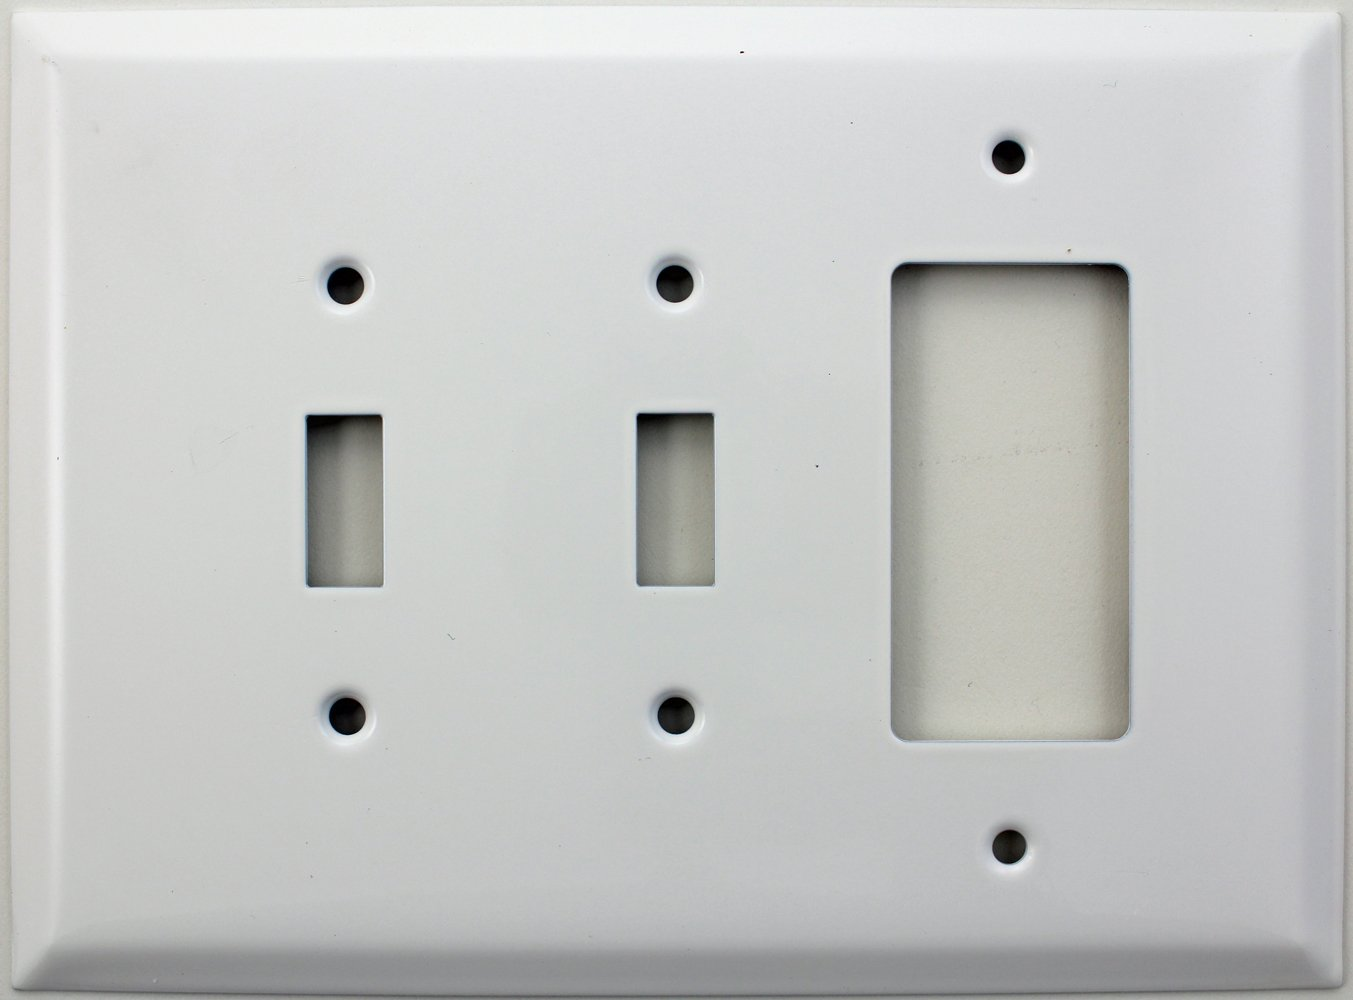 Over Sized Jumbo Smooth White 3 Gang Switch Plate - 2 Toggle Light Switch Openings 1 GFI/Rocker Opening